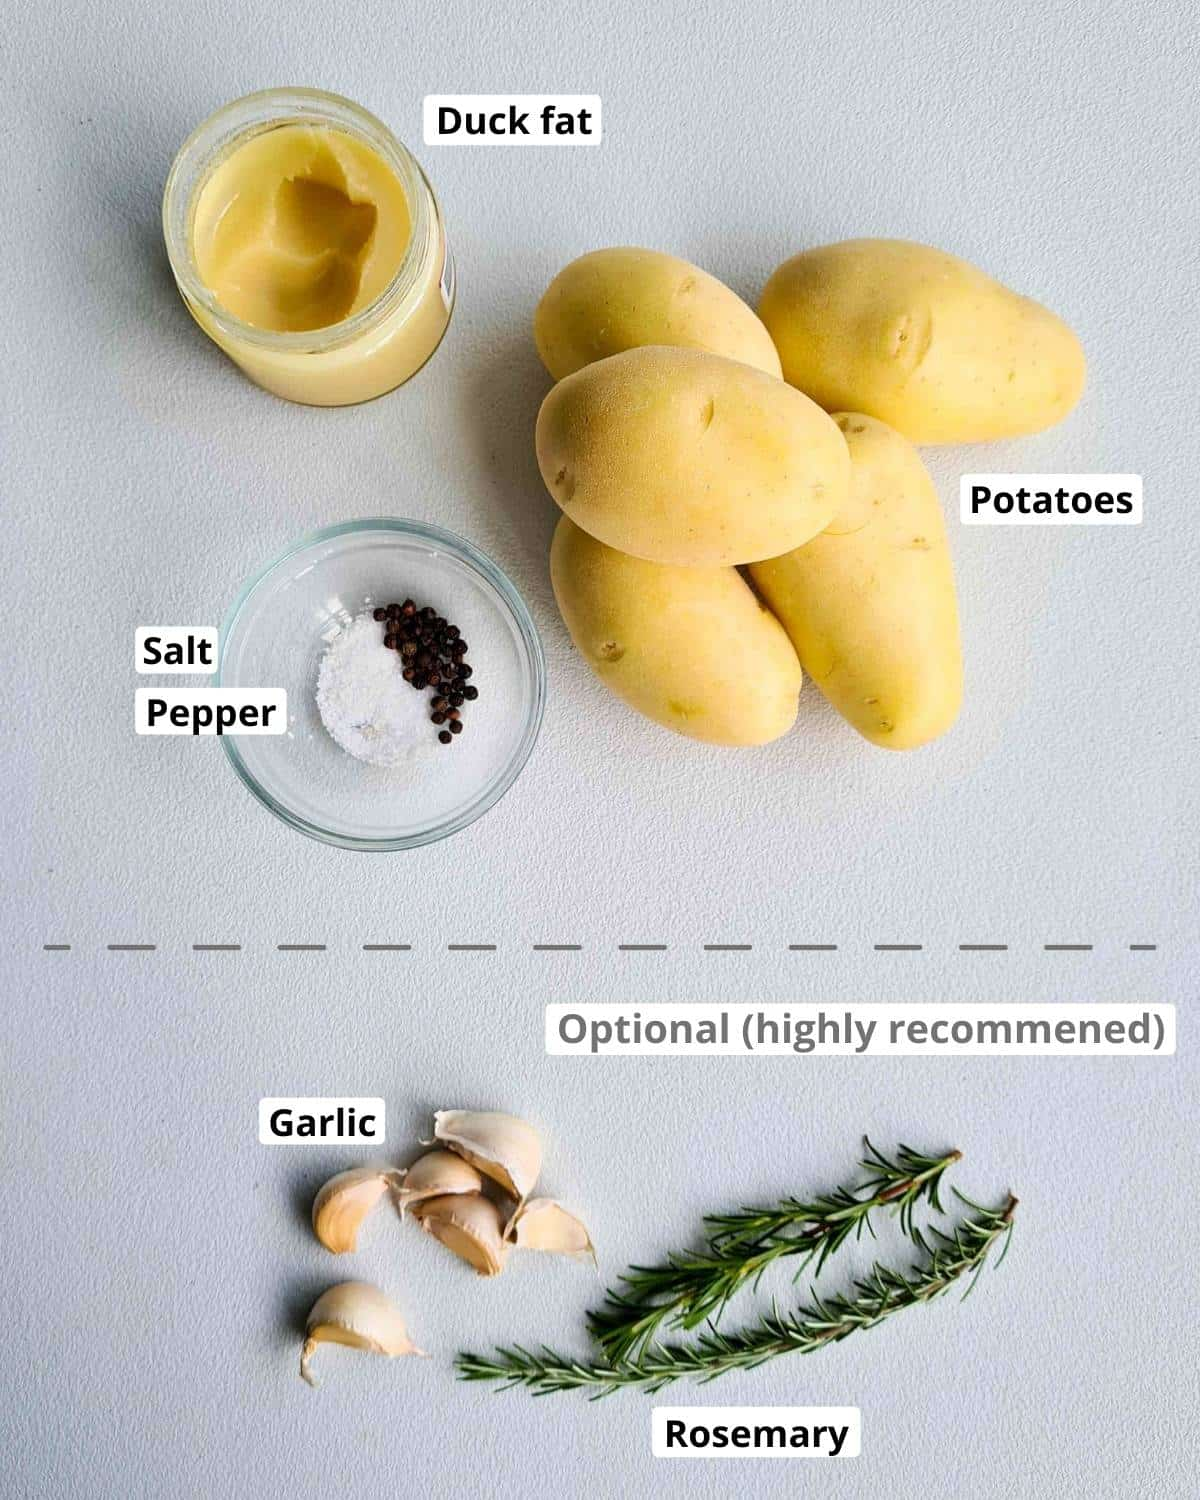 Ingredients for this recipe, labeled